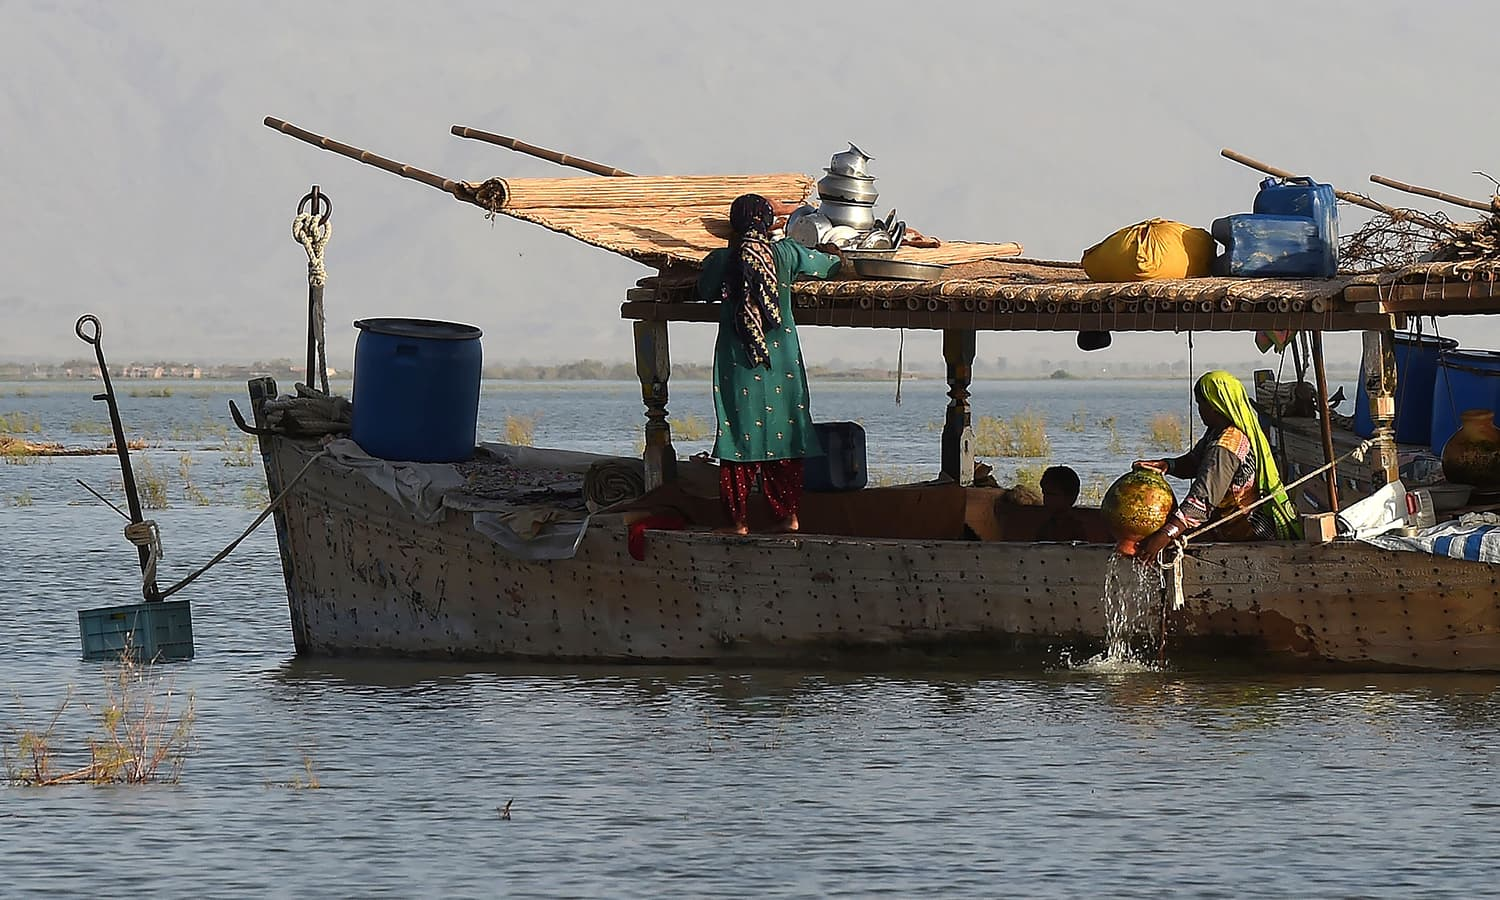 Paradise lost: How toxic water destroyed Pakistan's largest lake